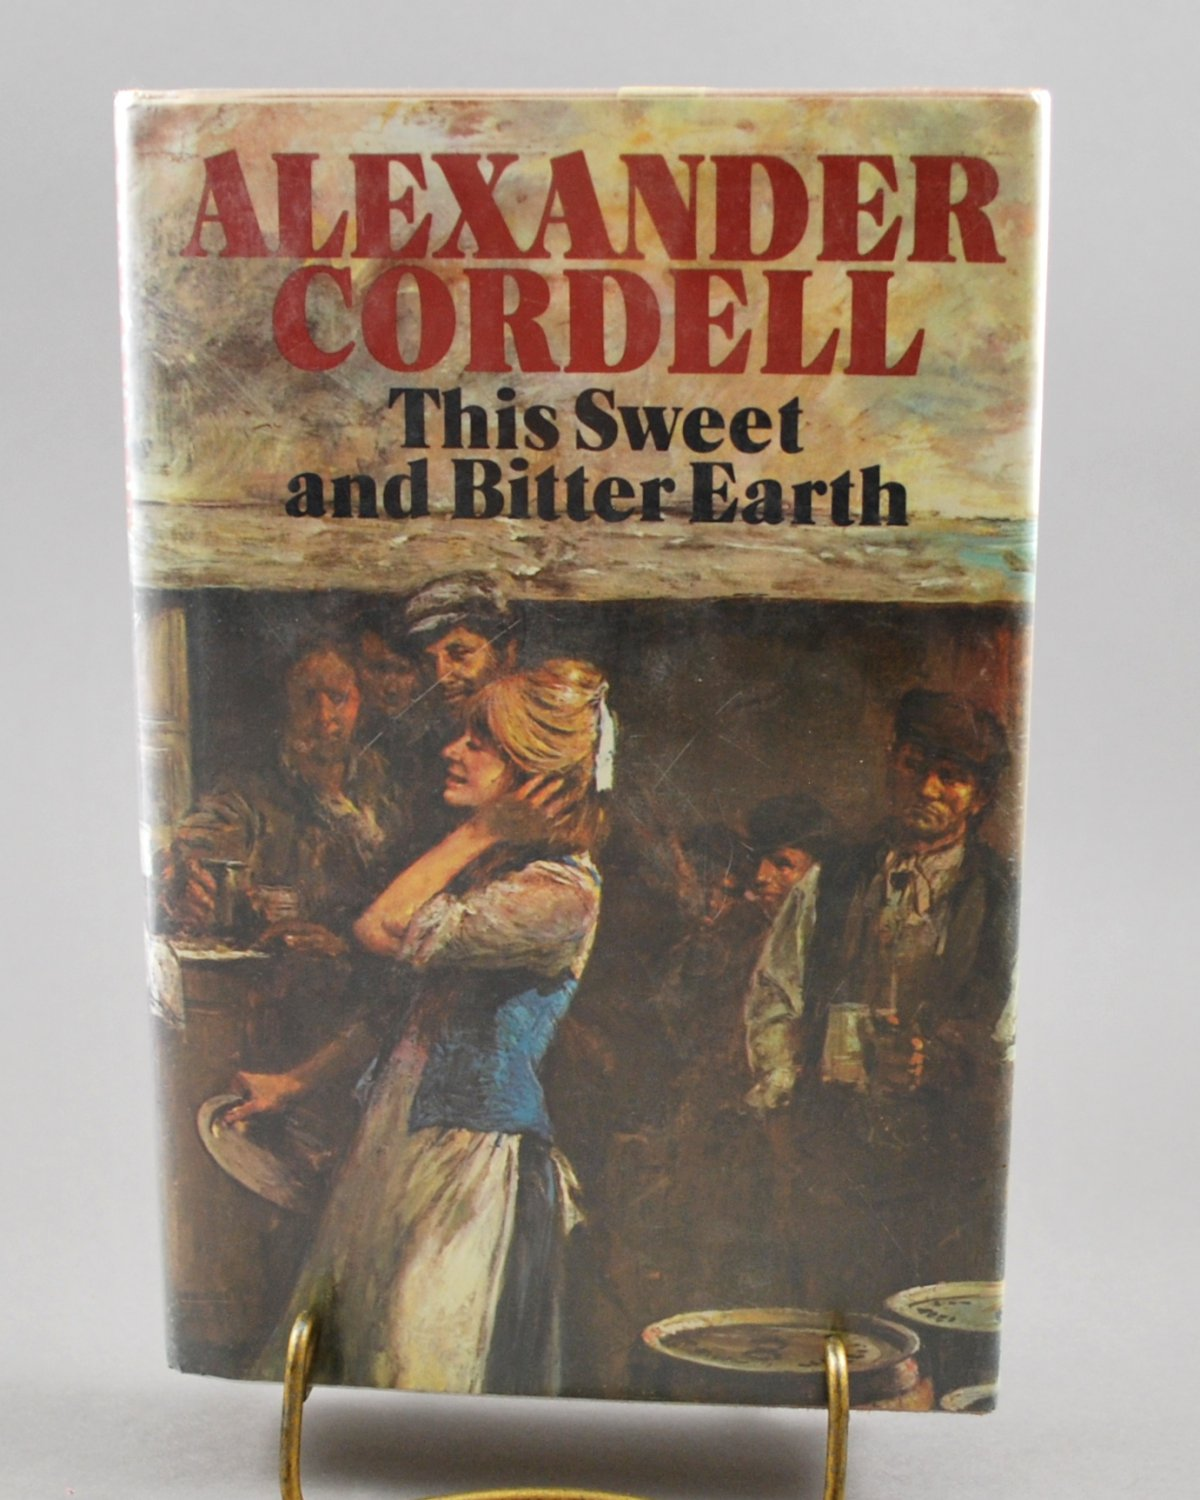 This Sweet and Bitter Earth by Alexander Cordell HB 1978